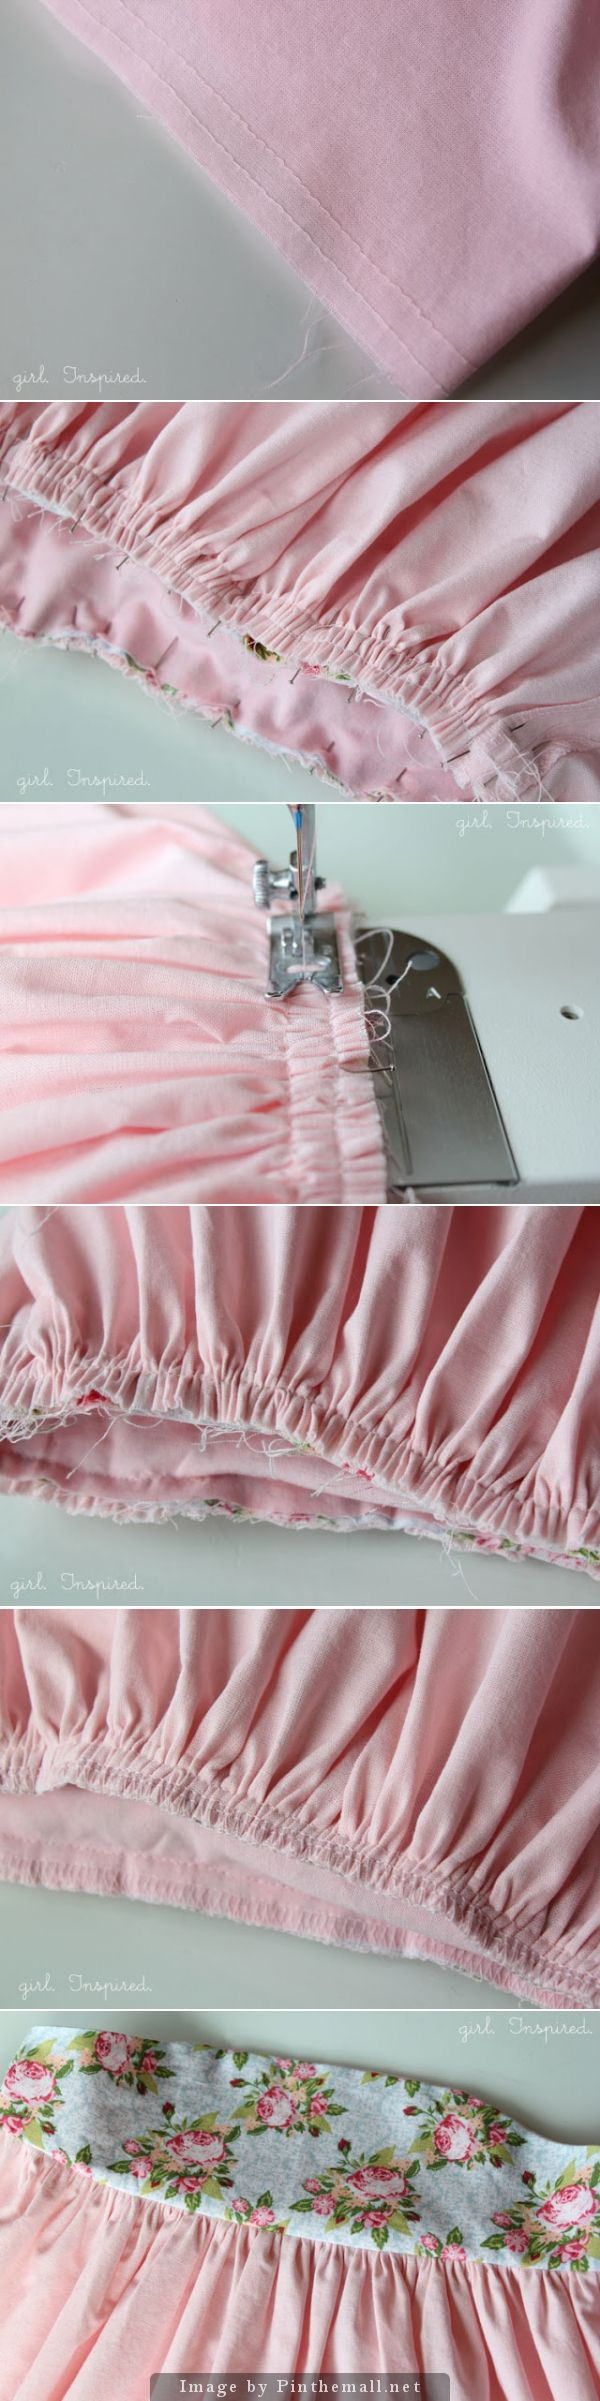 How to make a tidy business of your gathered skirt: Stefanie's method for beautiful gathers. Baste twice and line up your needle so that you can stitch directly in the center of your two rows of gathering stitches, which you remove once sewn to the other piece. Step by step: gathering your ruffles, pinning, sewing to bodice (or waist band) and serging. ~~ http://www.projectrunplay.com/2012/10/guest-judge-stefanie-from-girlinspired.html